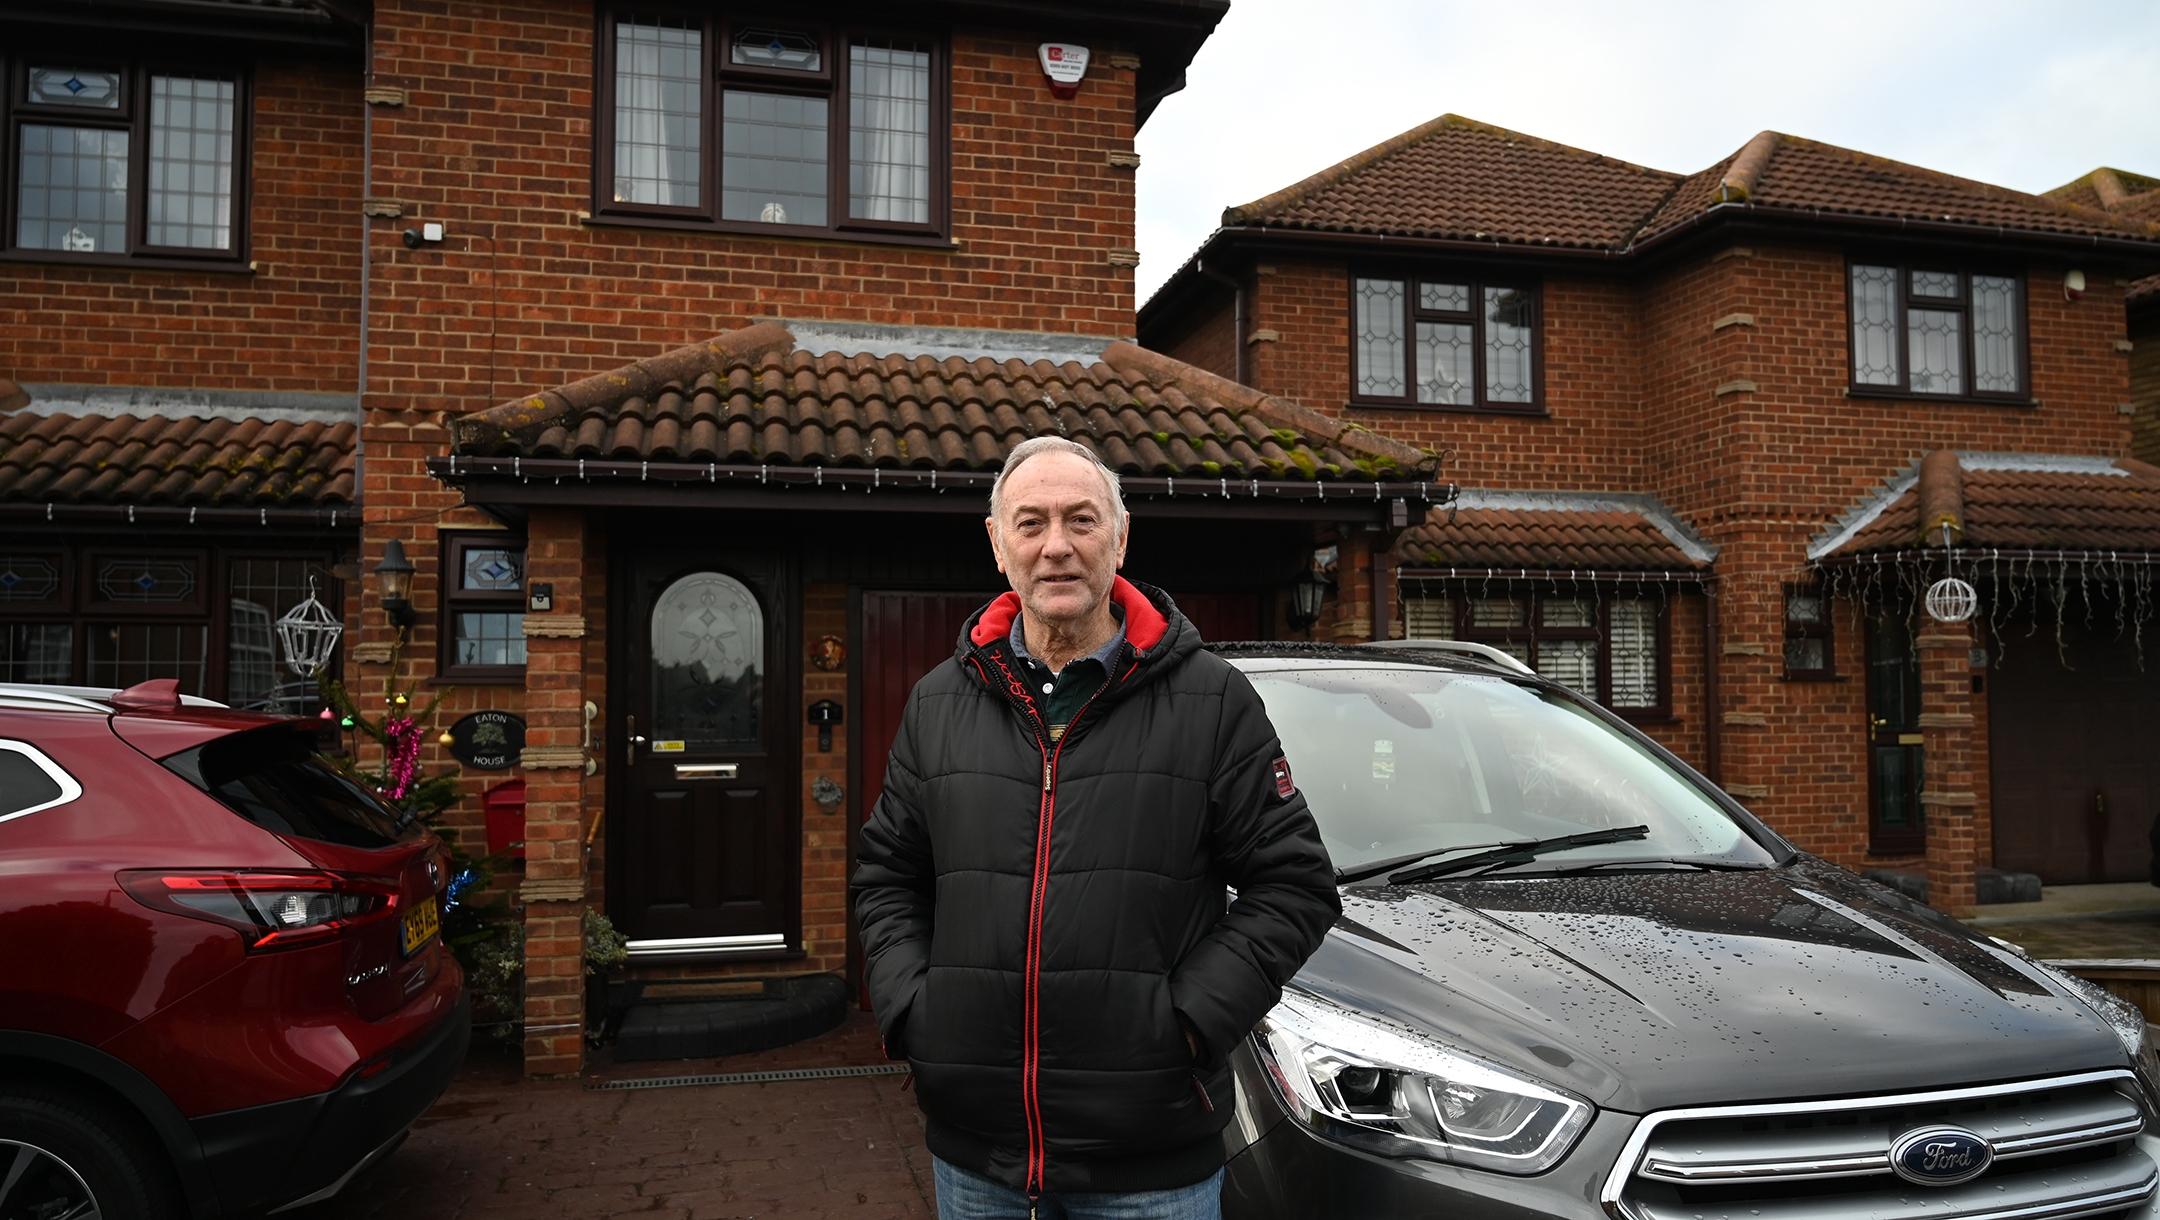 Tony Eaton standing outside his home on Canvey Island, UK on Dec. 13, 2019. (Cnaan Liphshiz)